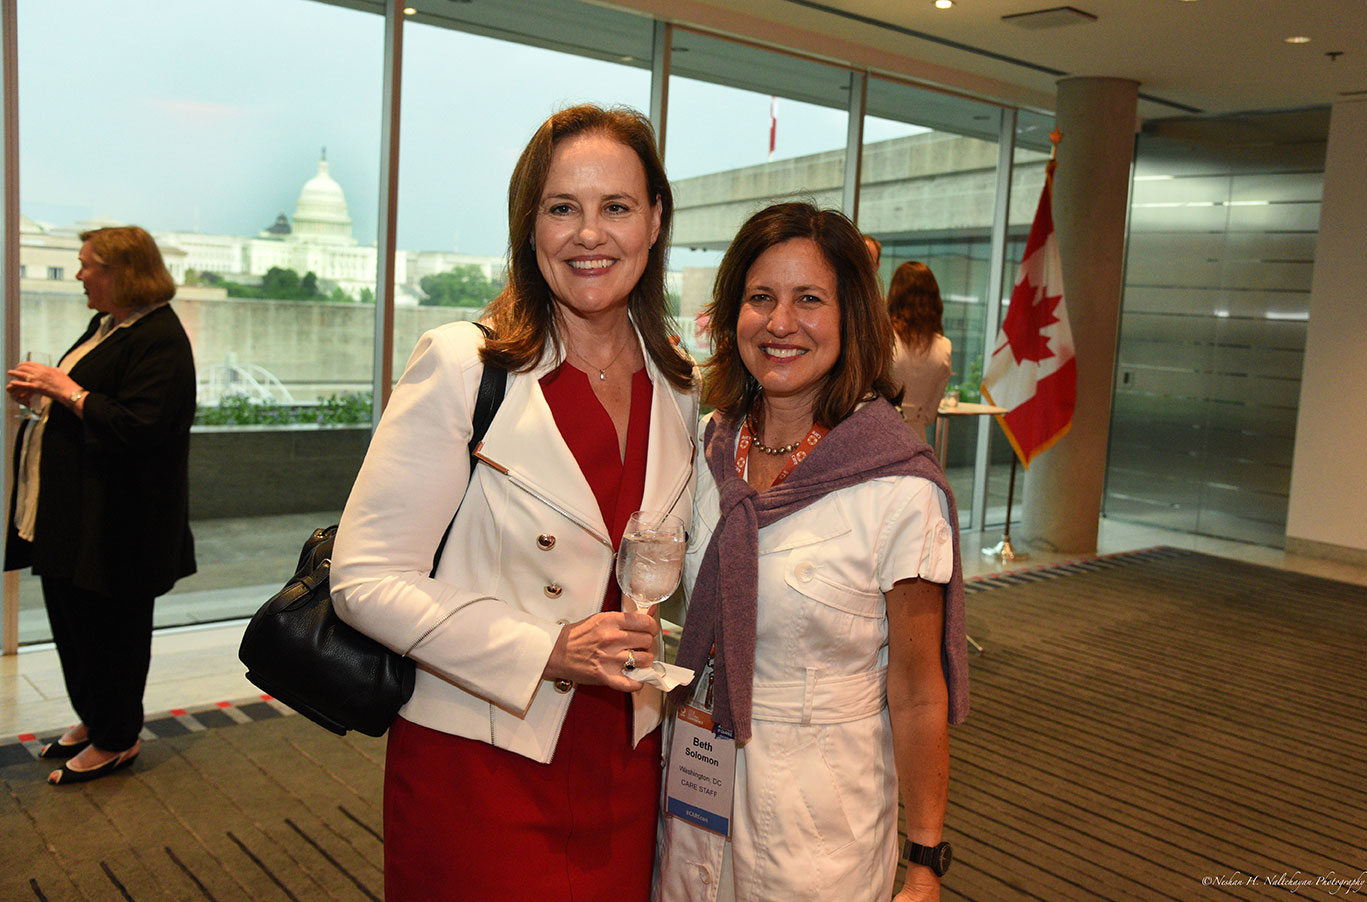 Michéle Flournoy enjoys a glass of water while standing next to Beth Solomon.